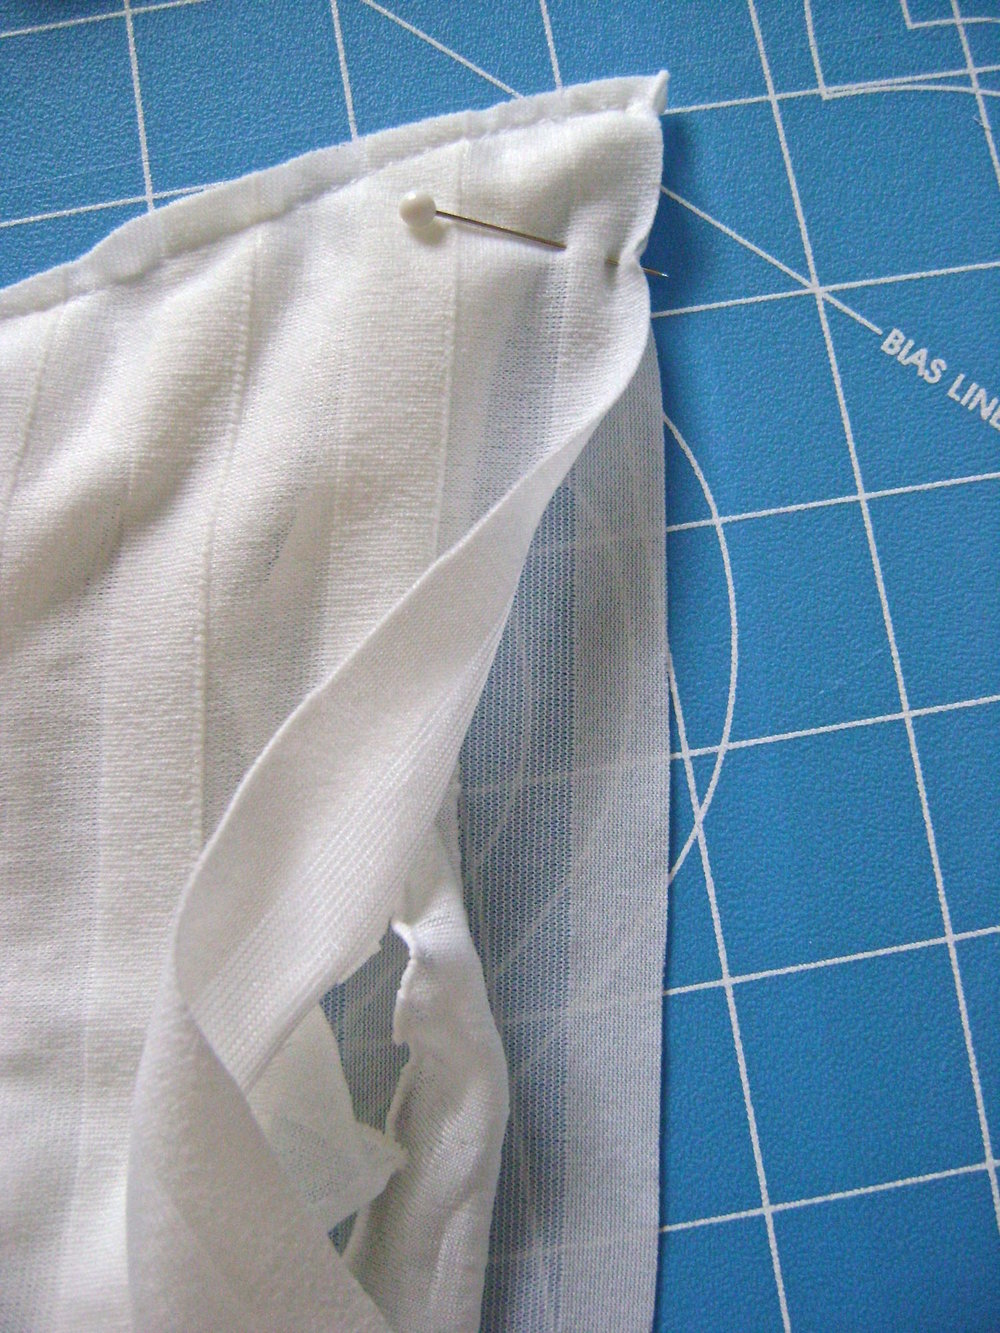 step 3 - Sew the bottom seam by moving aside the ruffles and joining the front and back with as small a seam as possible.